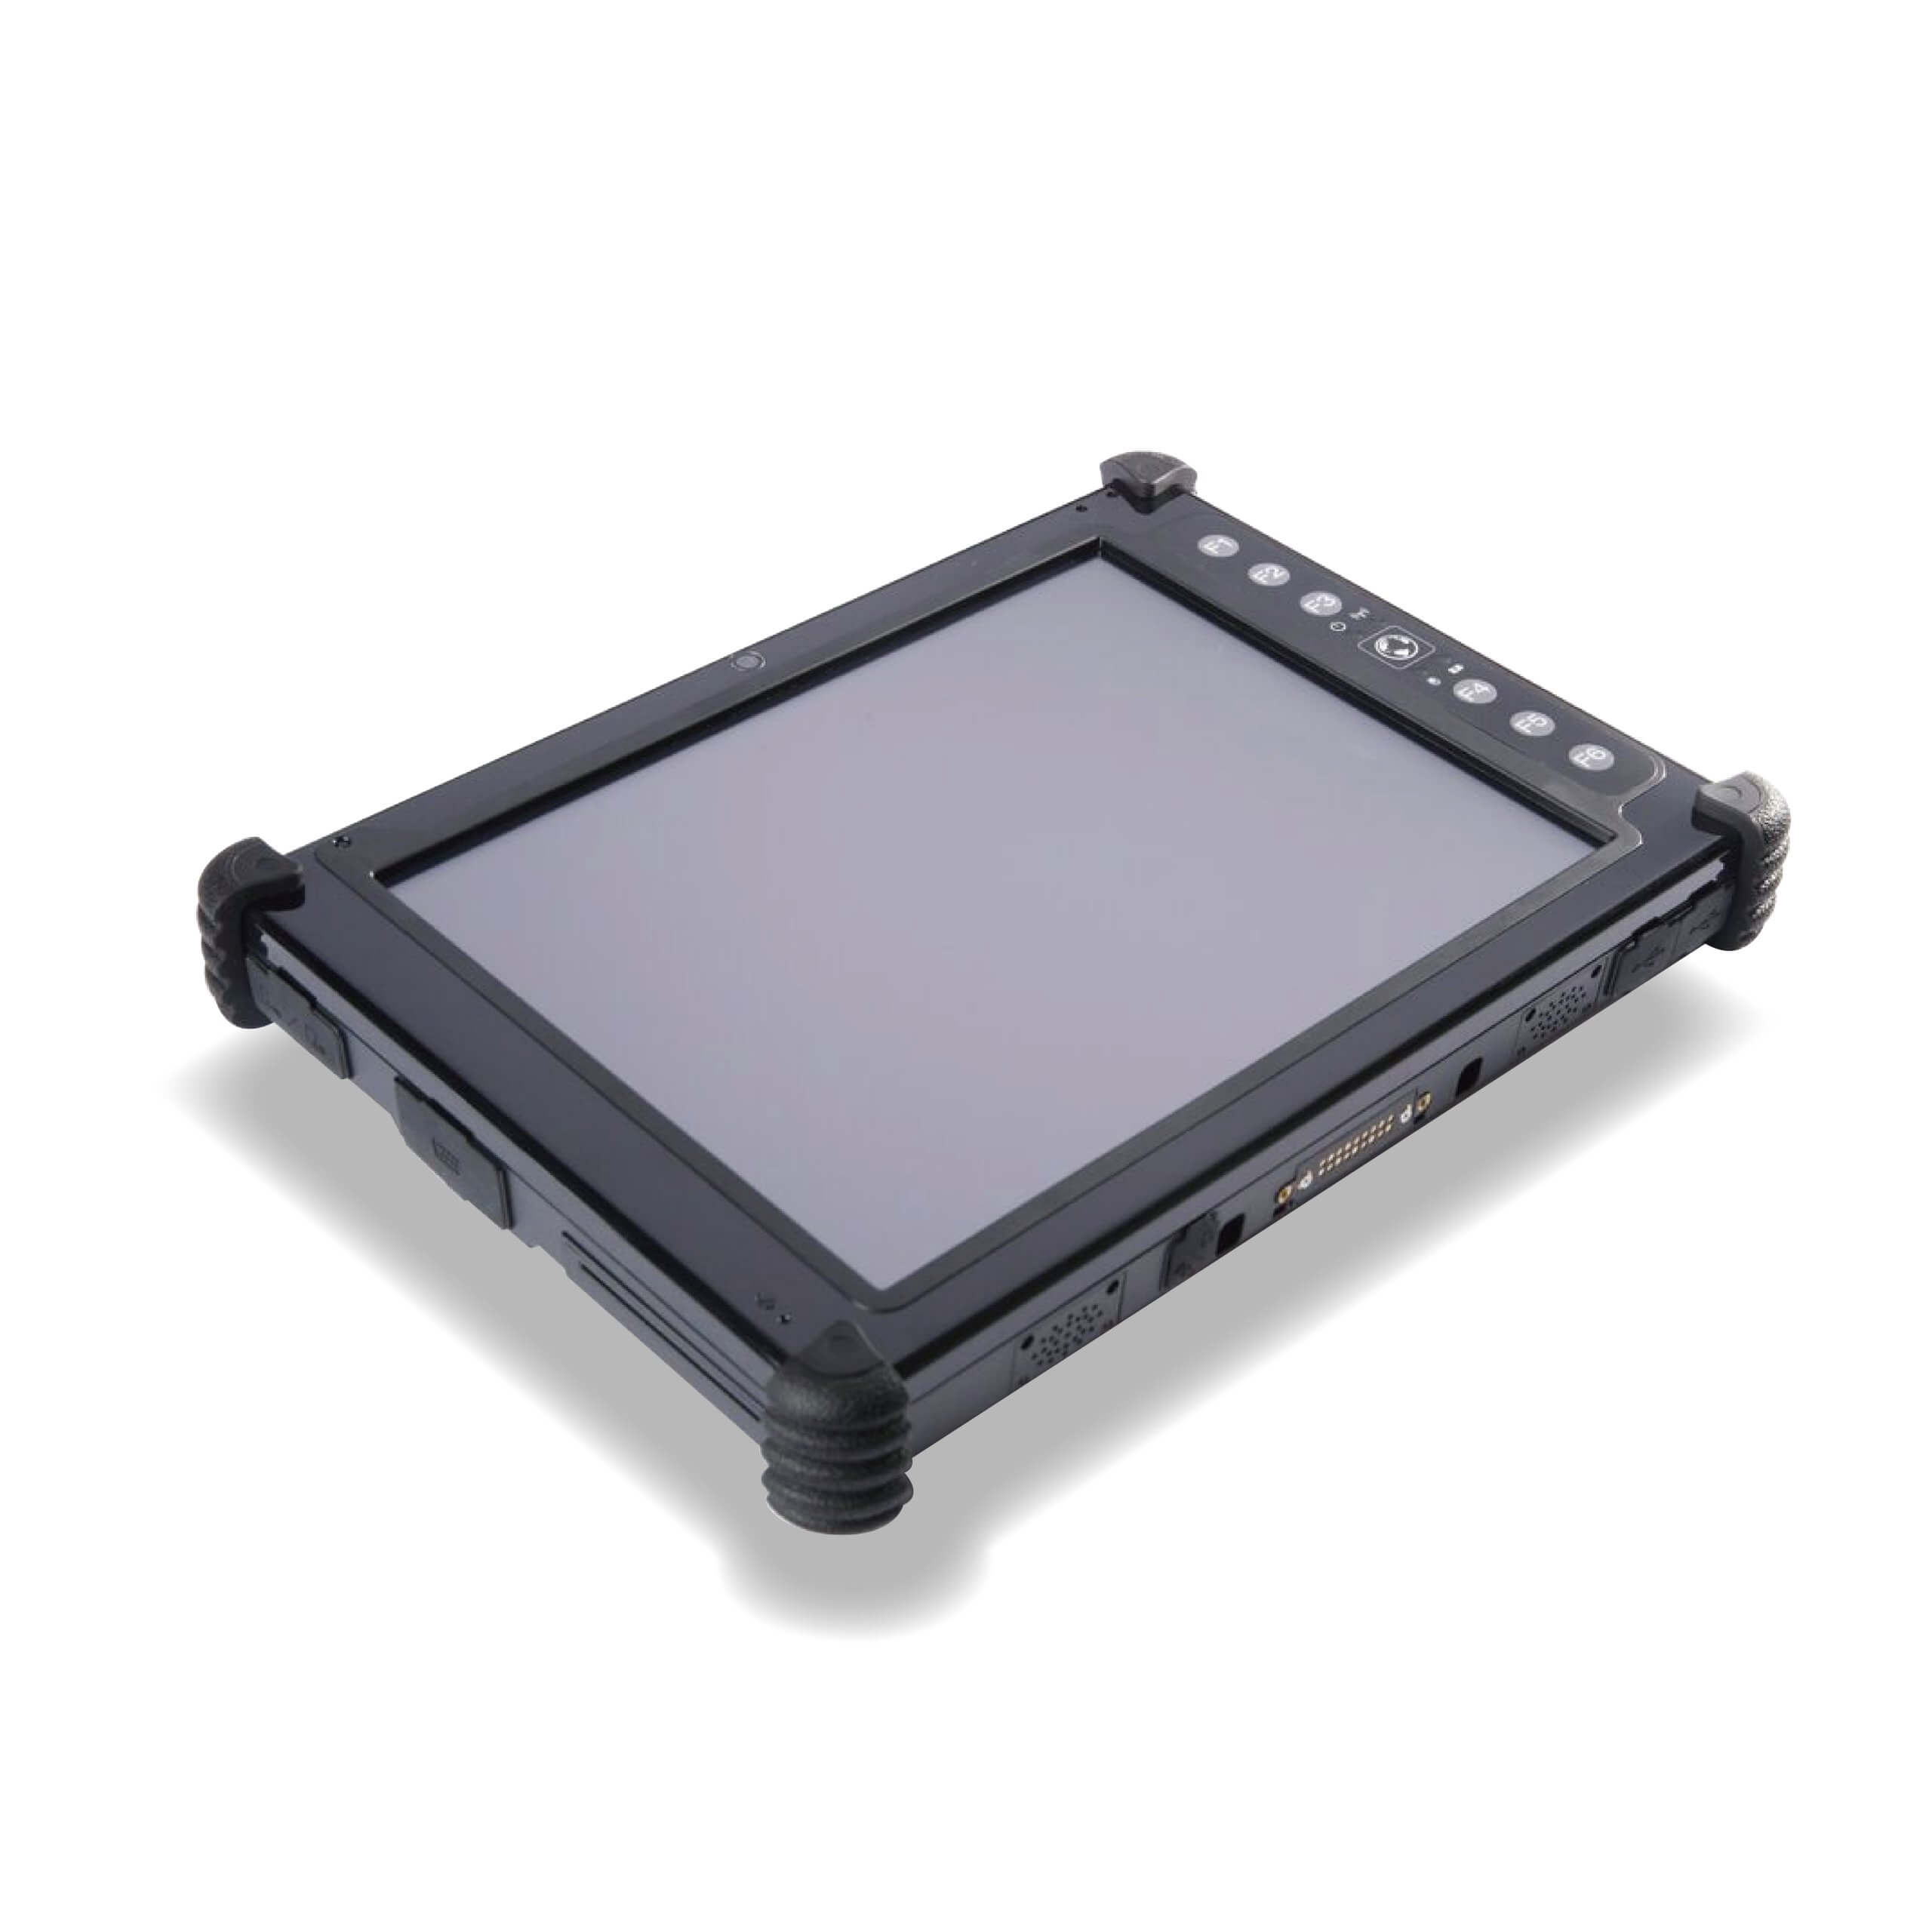 "MTA-3097 9.7"" Rugged Windows Tablet PC"